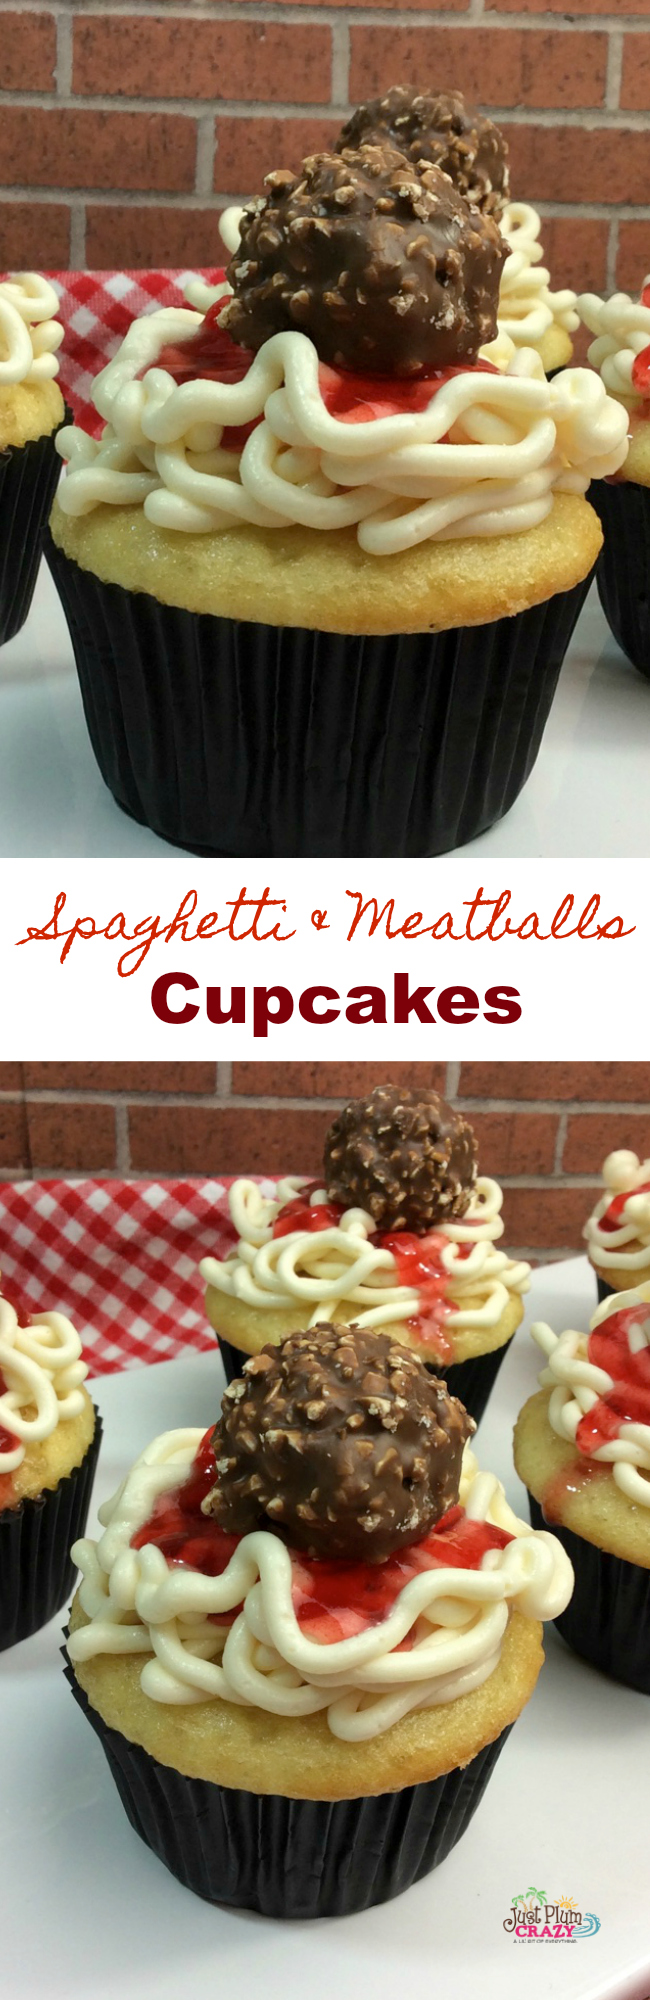 Finishing off National Spaghetti Day with a cupcake! Here we have a twist on spaghetti and meatballs with a Spaghetti and Meatball Cupcake recipe. WHAT? Yeah, that's different alright!